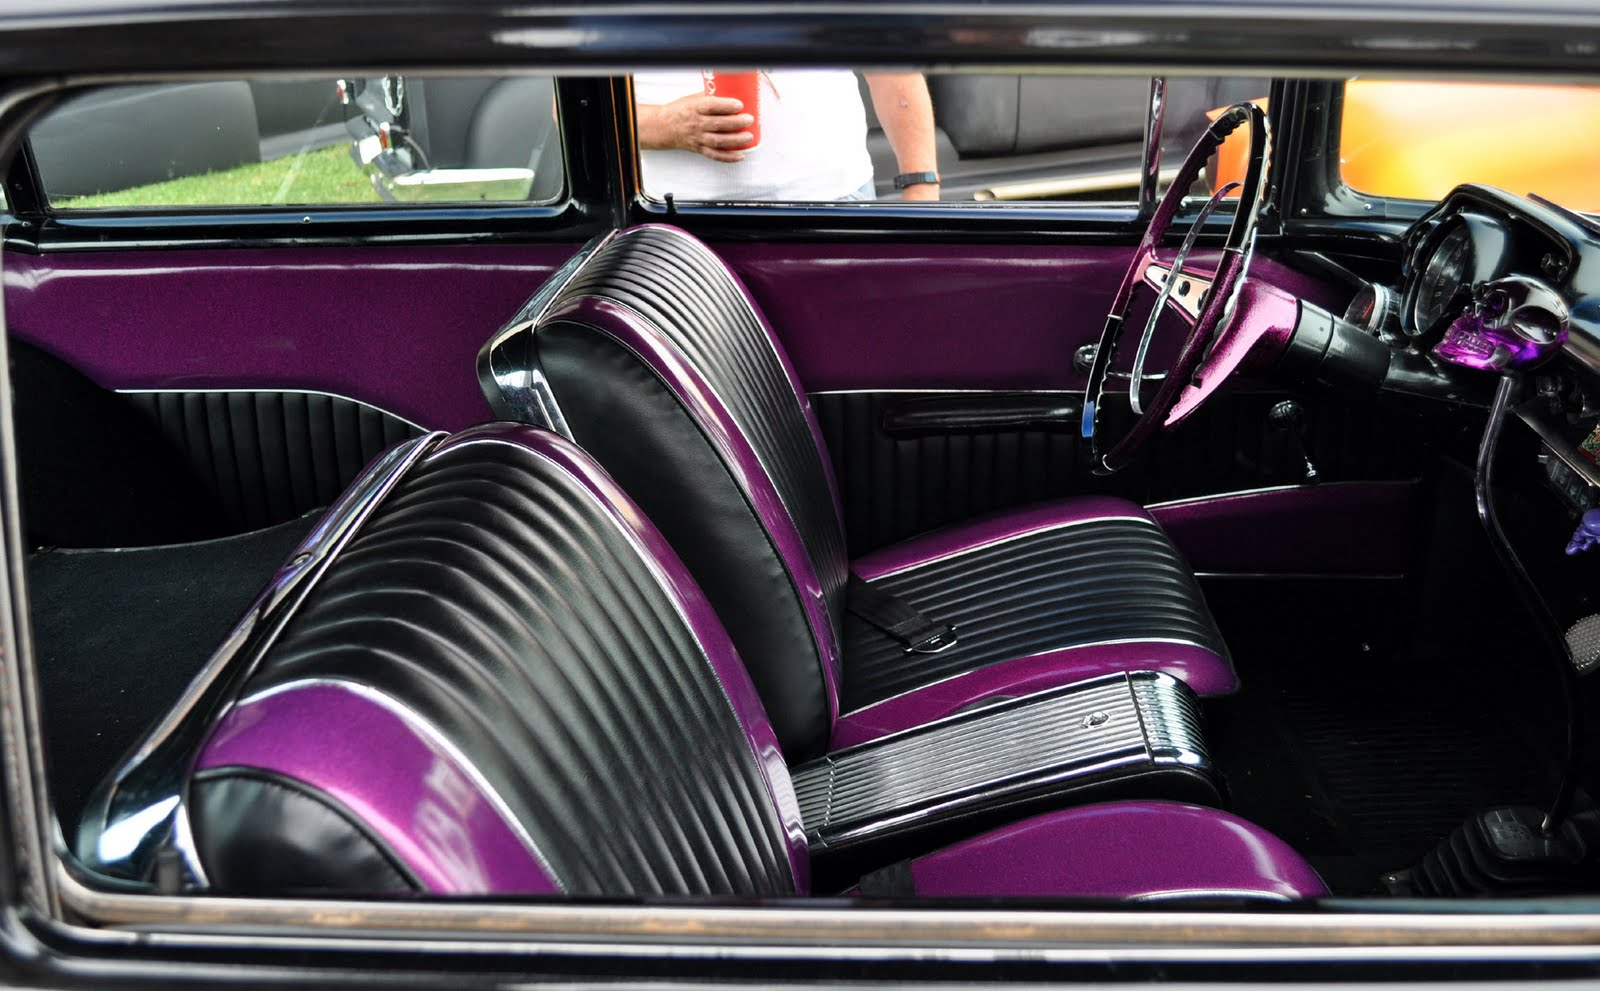 Lowrider interior | Customizing a car's interior can be as i… | Flickr